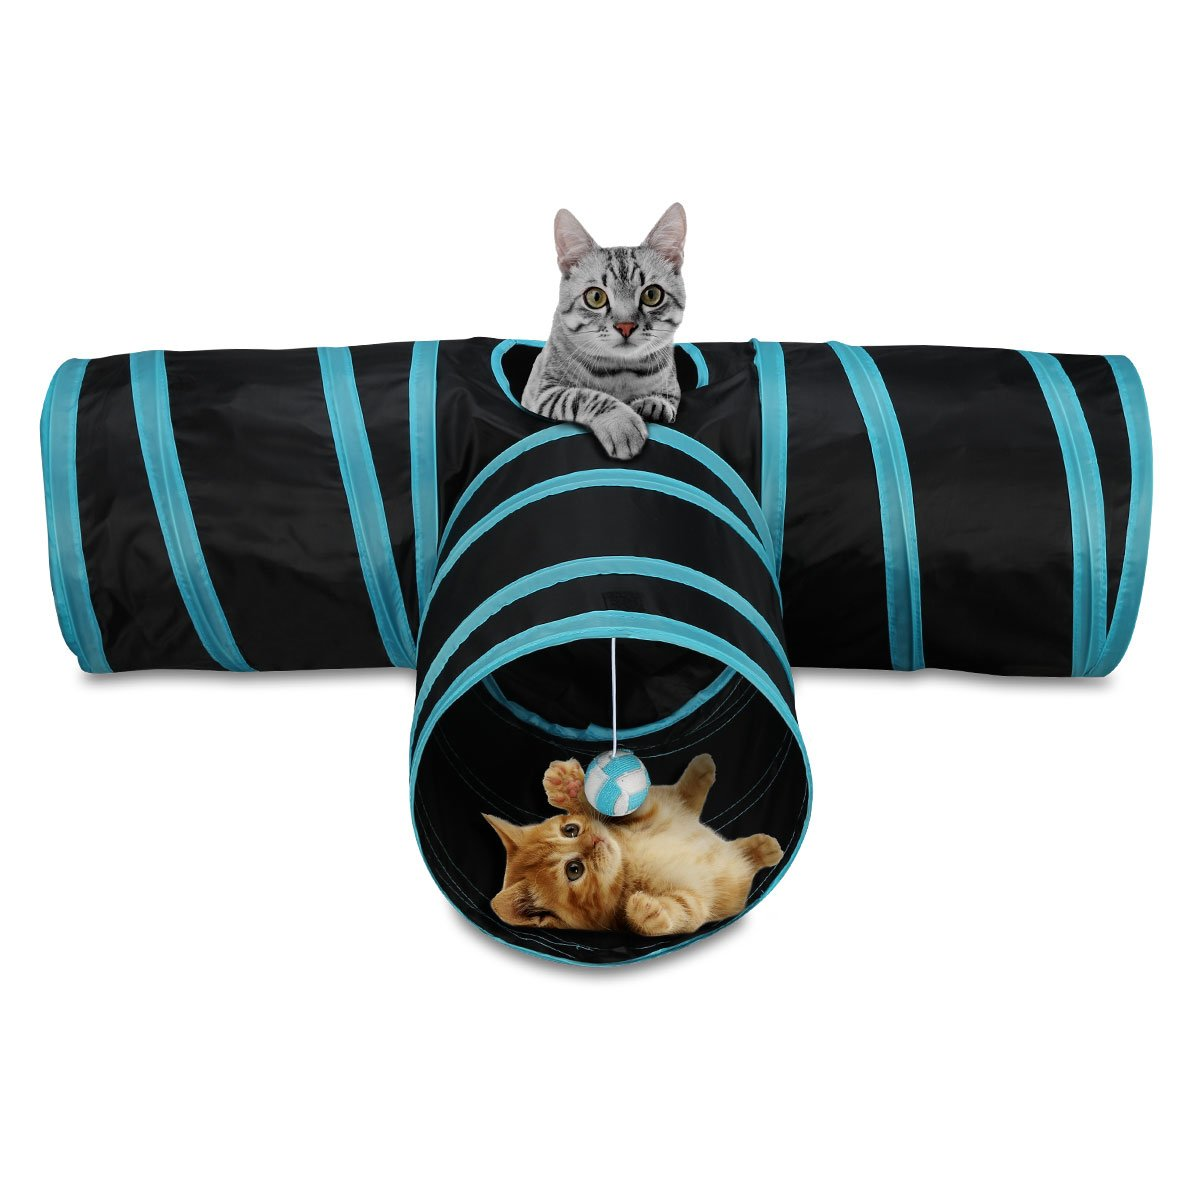 MOREASE 3 Way Cat Tunnel Cat/Dog/Rabbit toy Collapsible Tunnel T-shape Design Dura Interactive ball